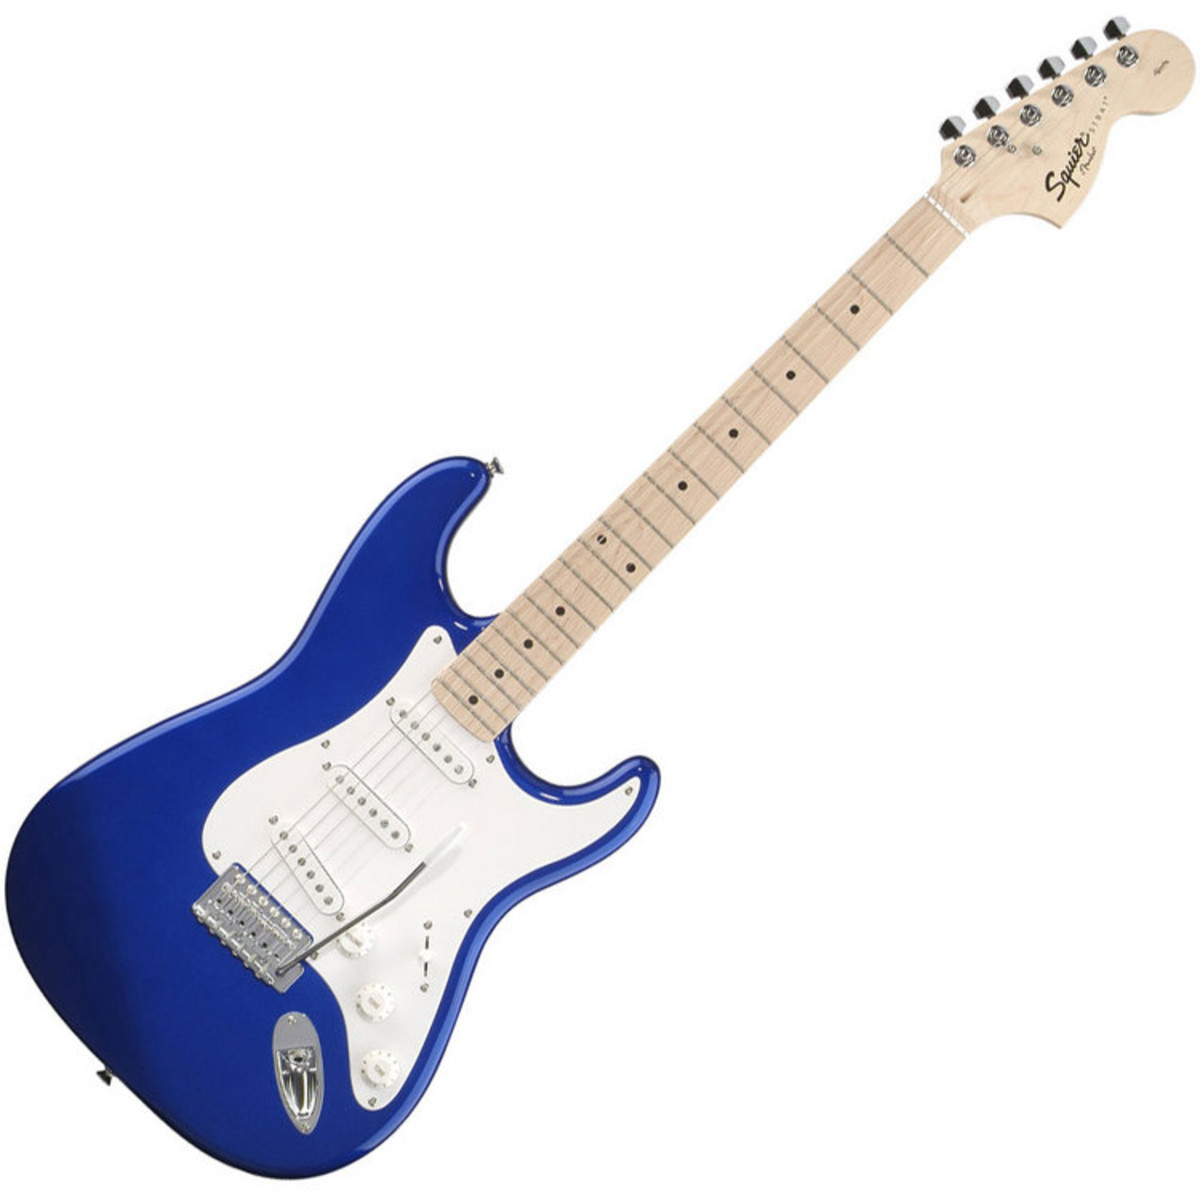 disc squier by fender affinity stratocaster metallic blue at gear4music. Black Bedroom Furniture Sets. Home Design Ideas